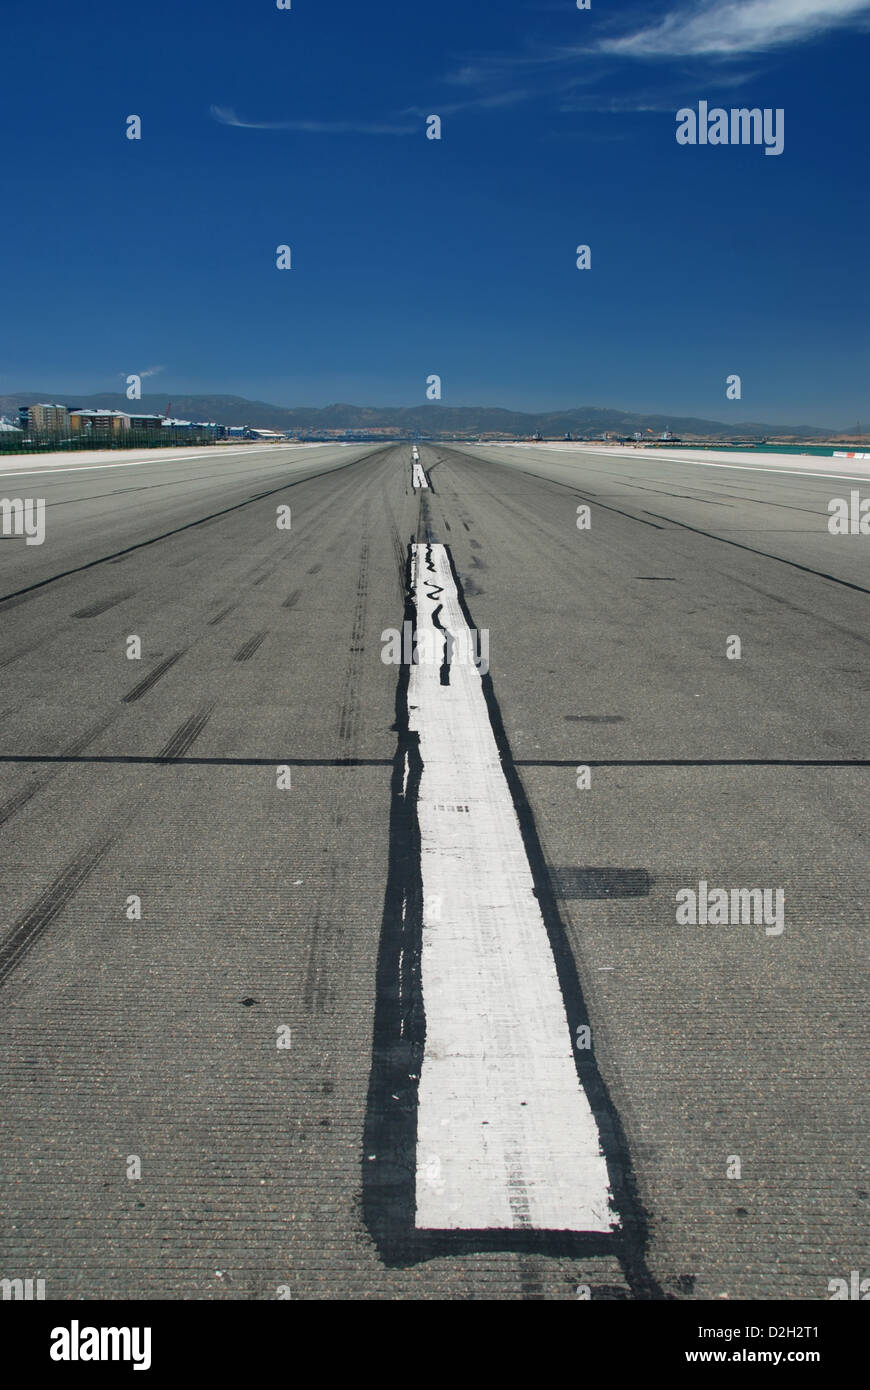 Large white stripe down the middle of a runway at an airport - Stock Image